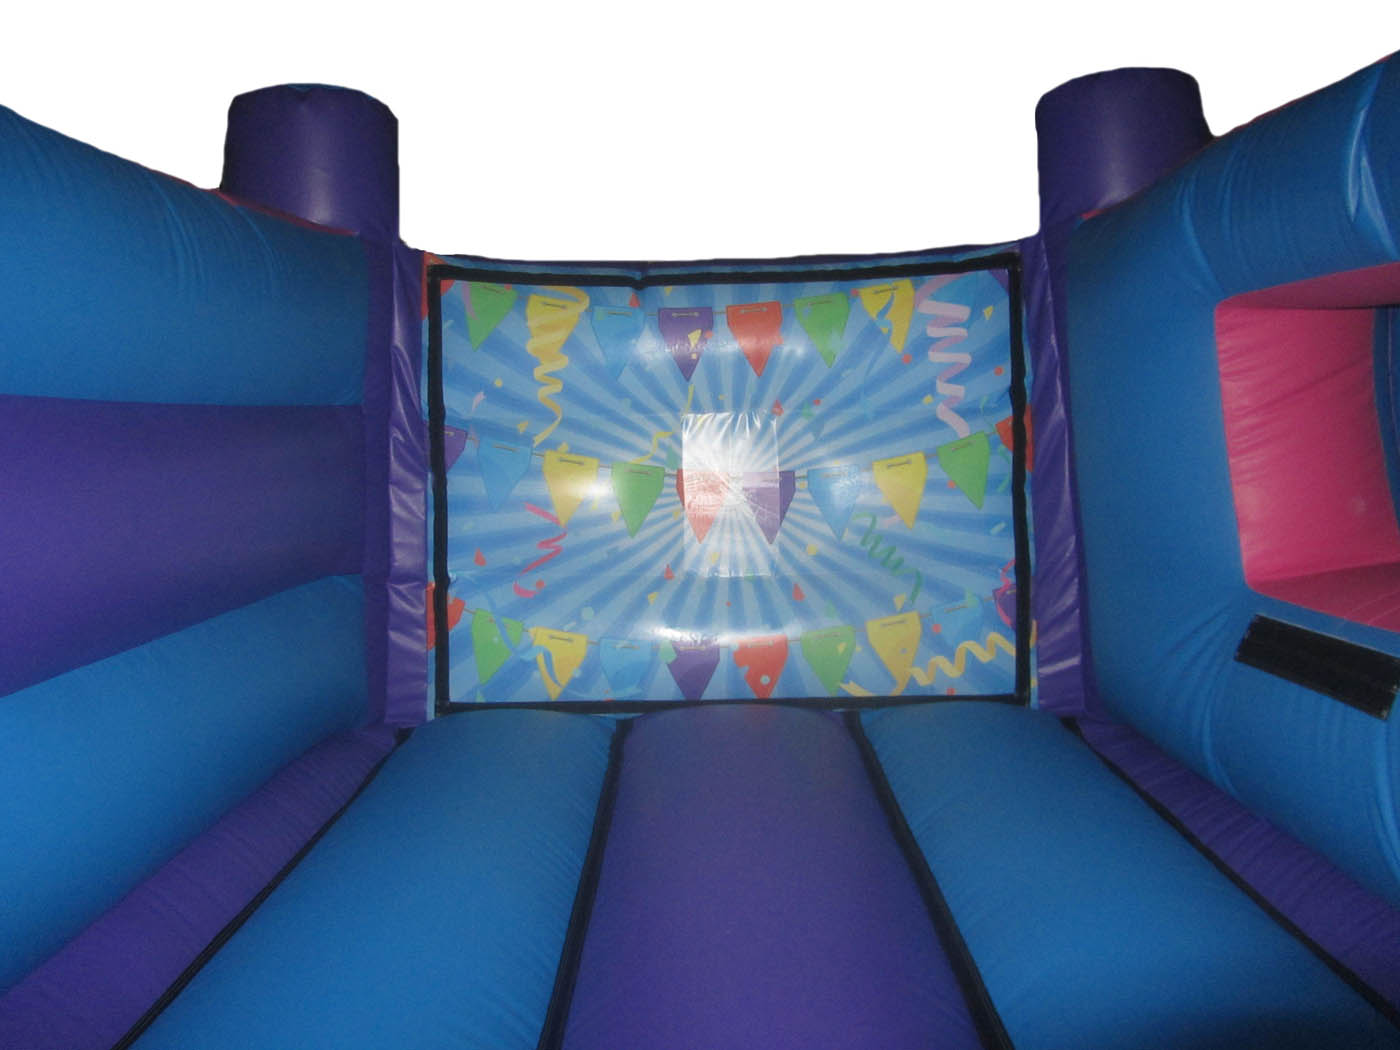 17x15-4post-combi-childrens-bouncy-castle-bw-compressor